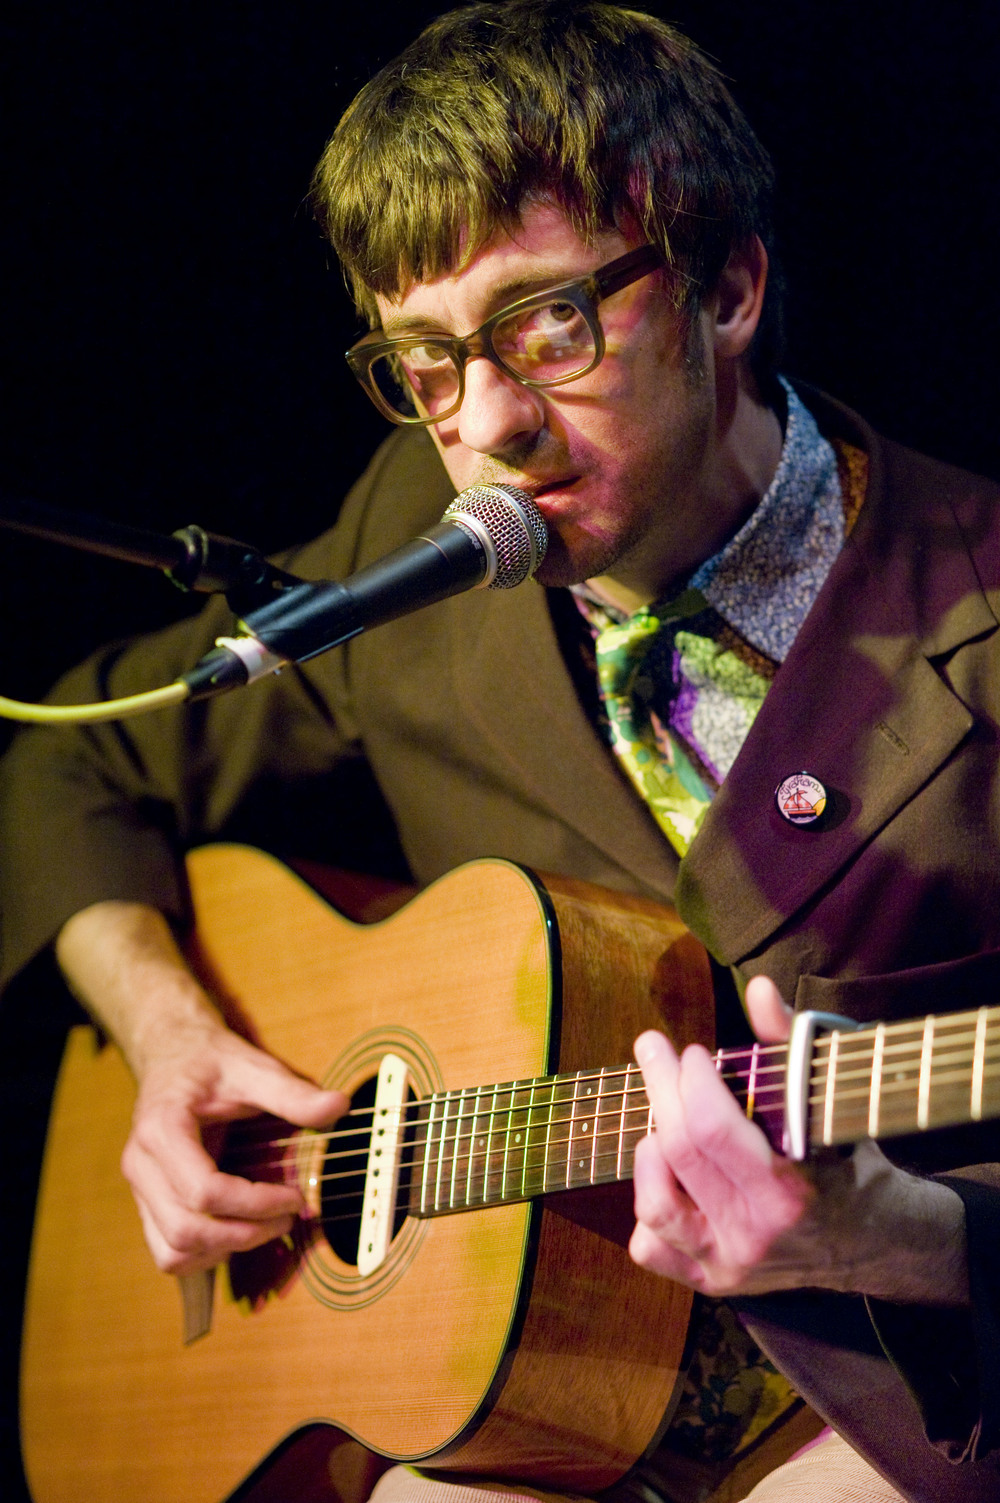 GrahamCoxon_April13th09_BBritton_07.JPG